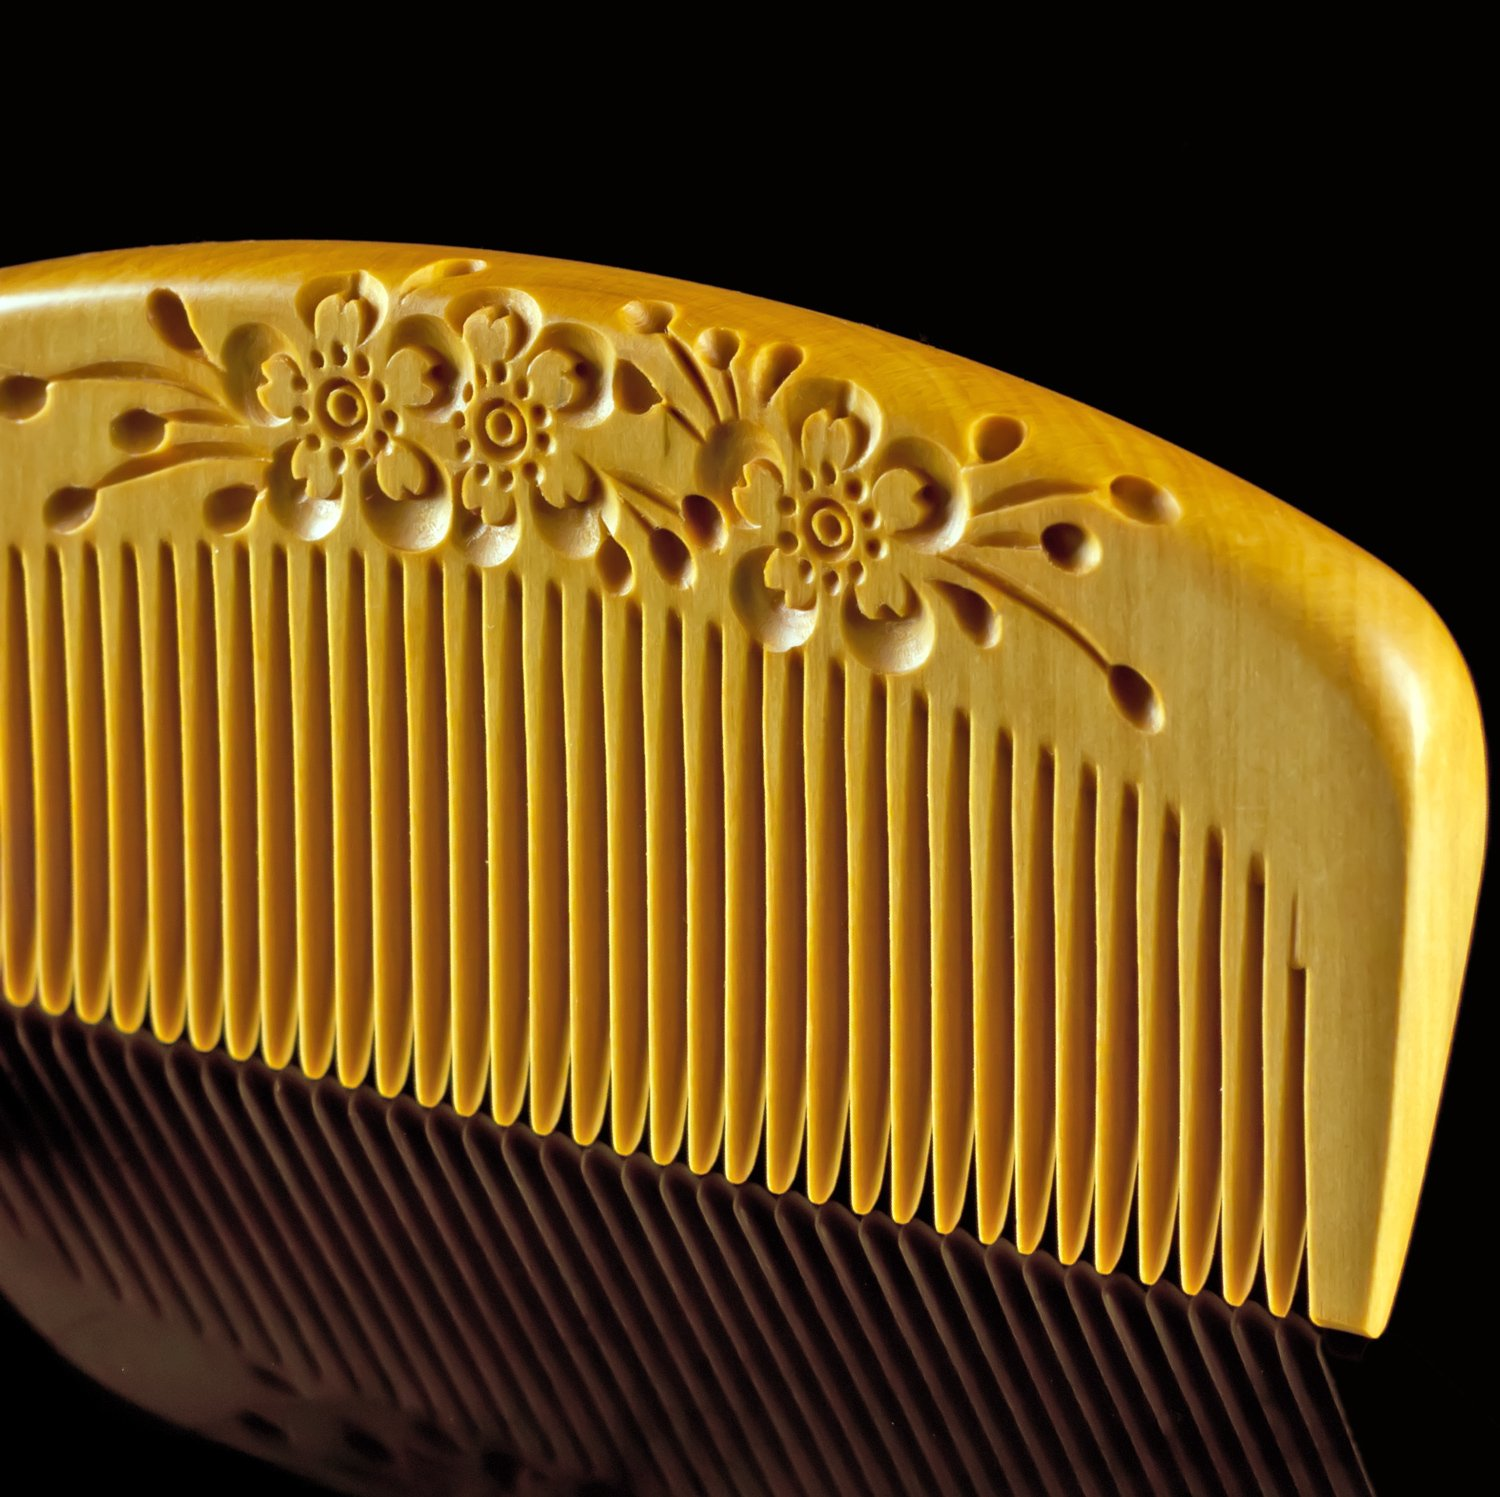 Japanese Tsuge Wood Comb